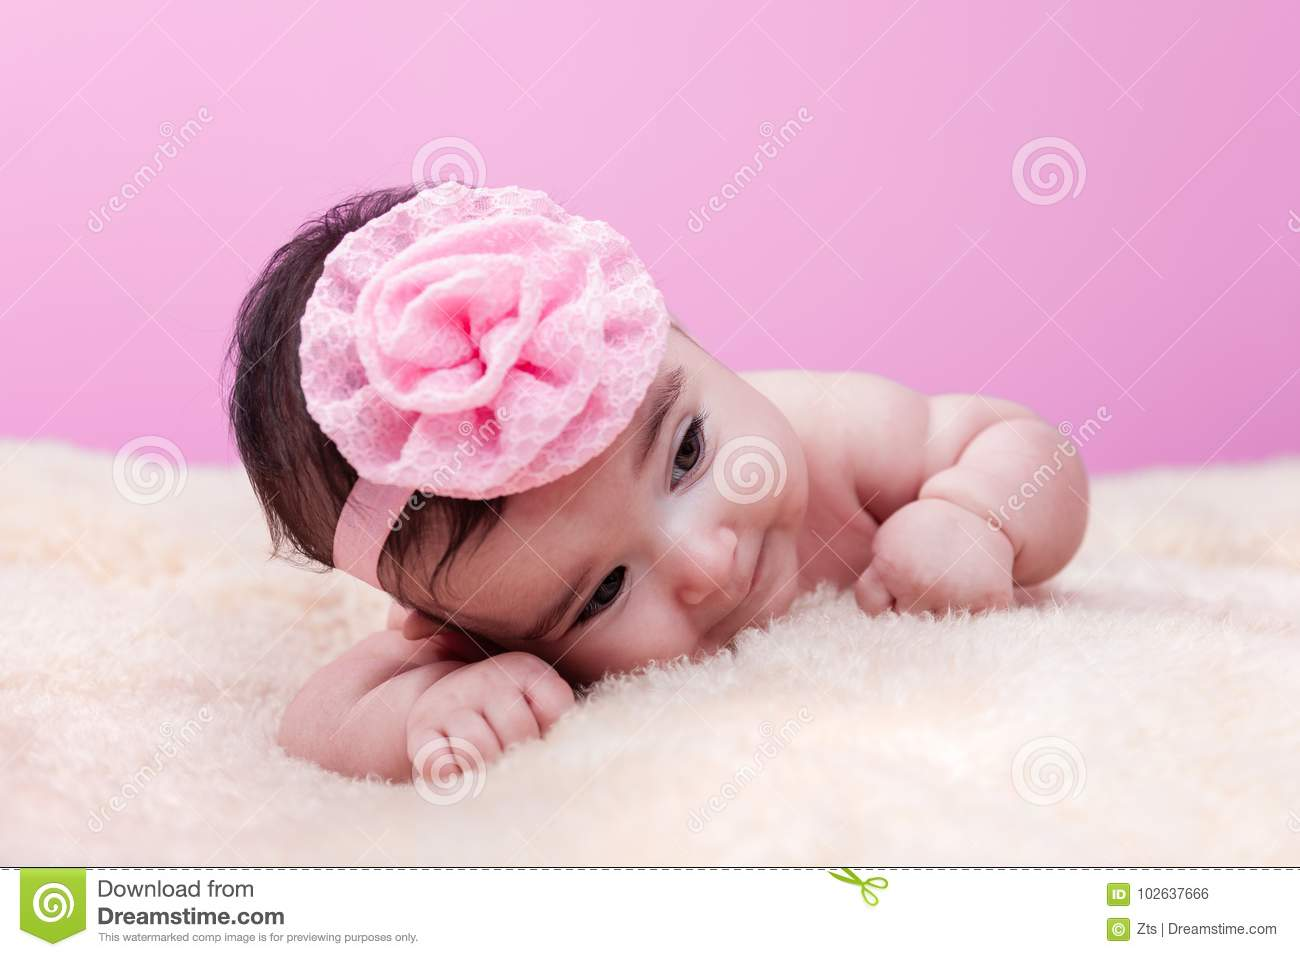 Cute, pretty, happy and chubby baby girl without clothes, naked or nude